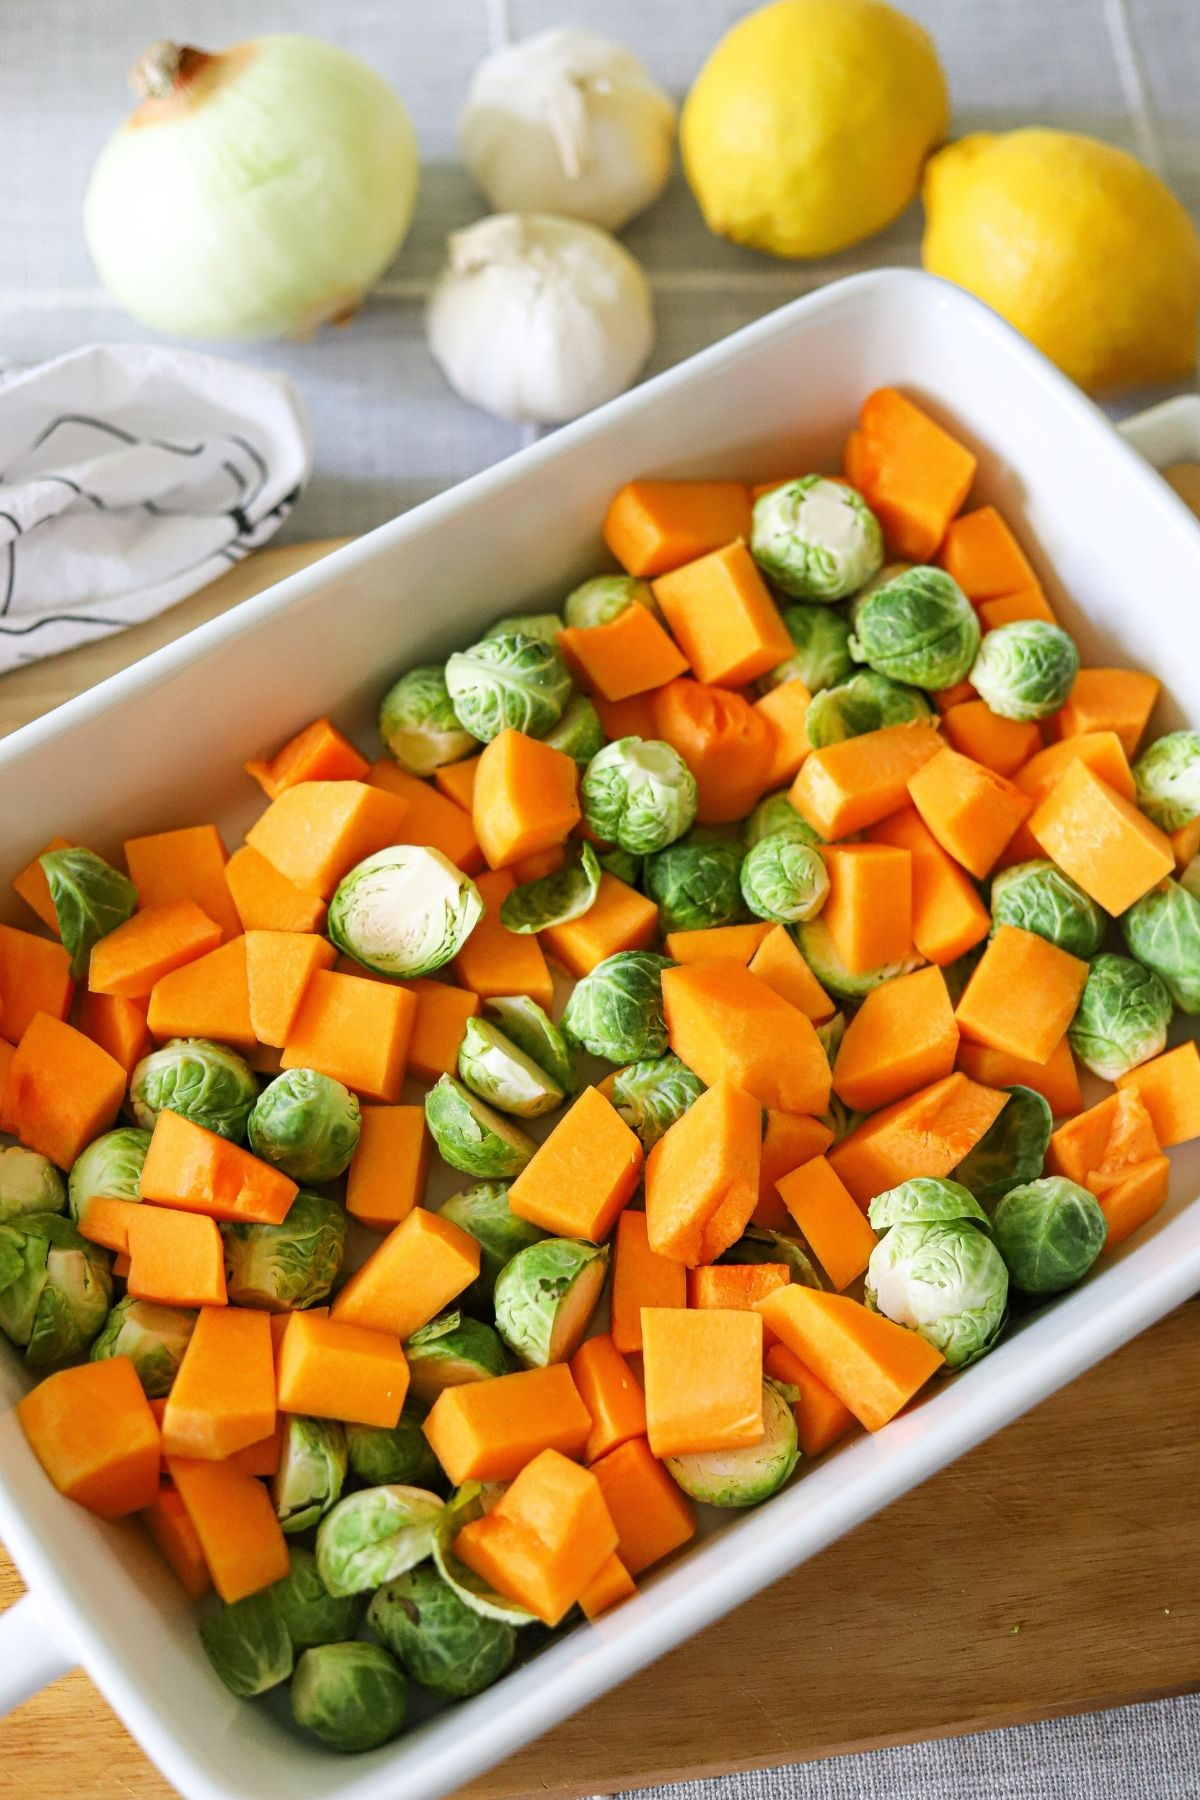 a baking dish full of cubed butternut squash, halved brussles sprouts, and peeled garlic cloves.